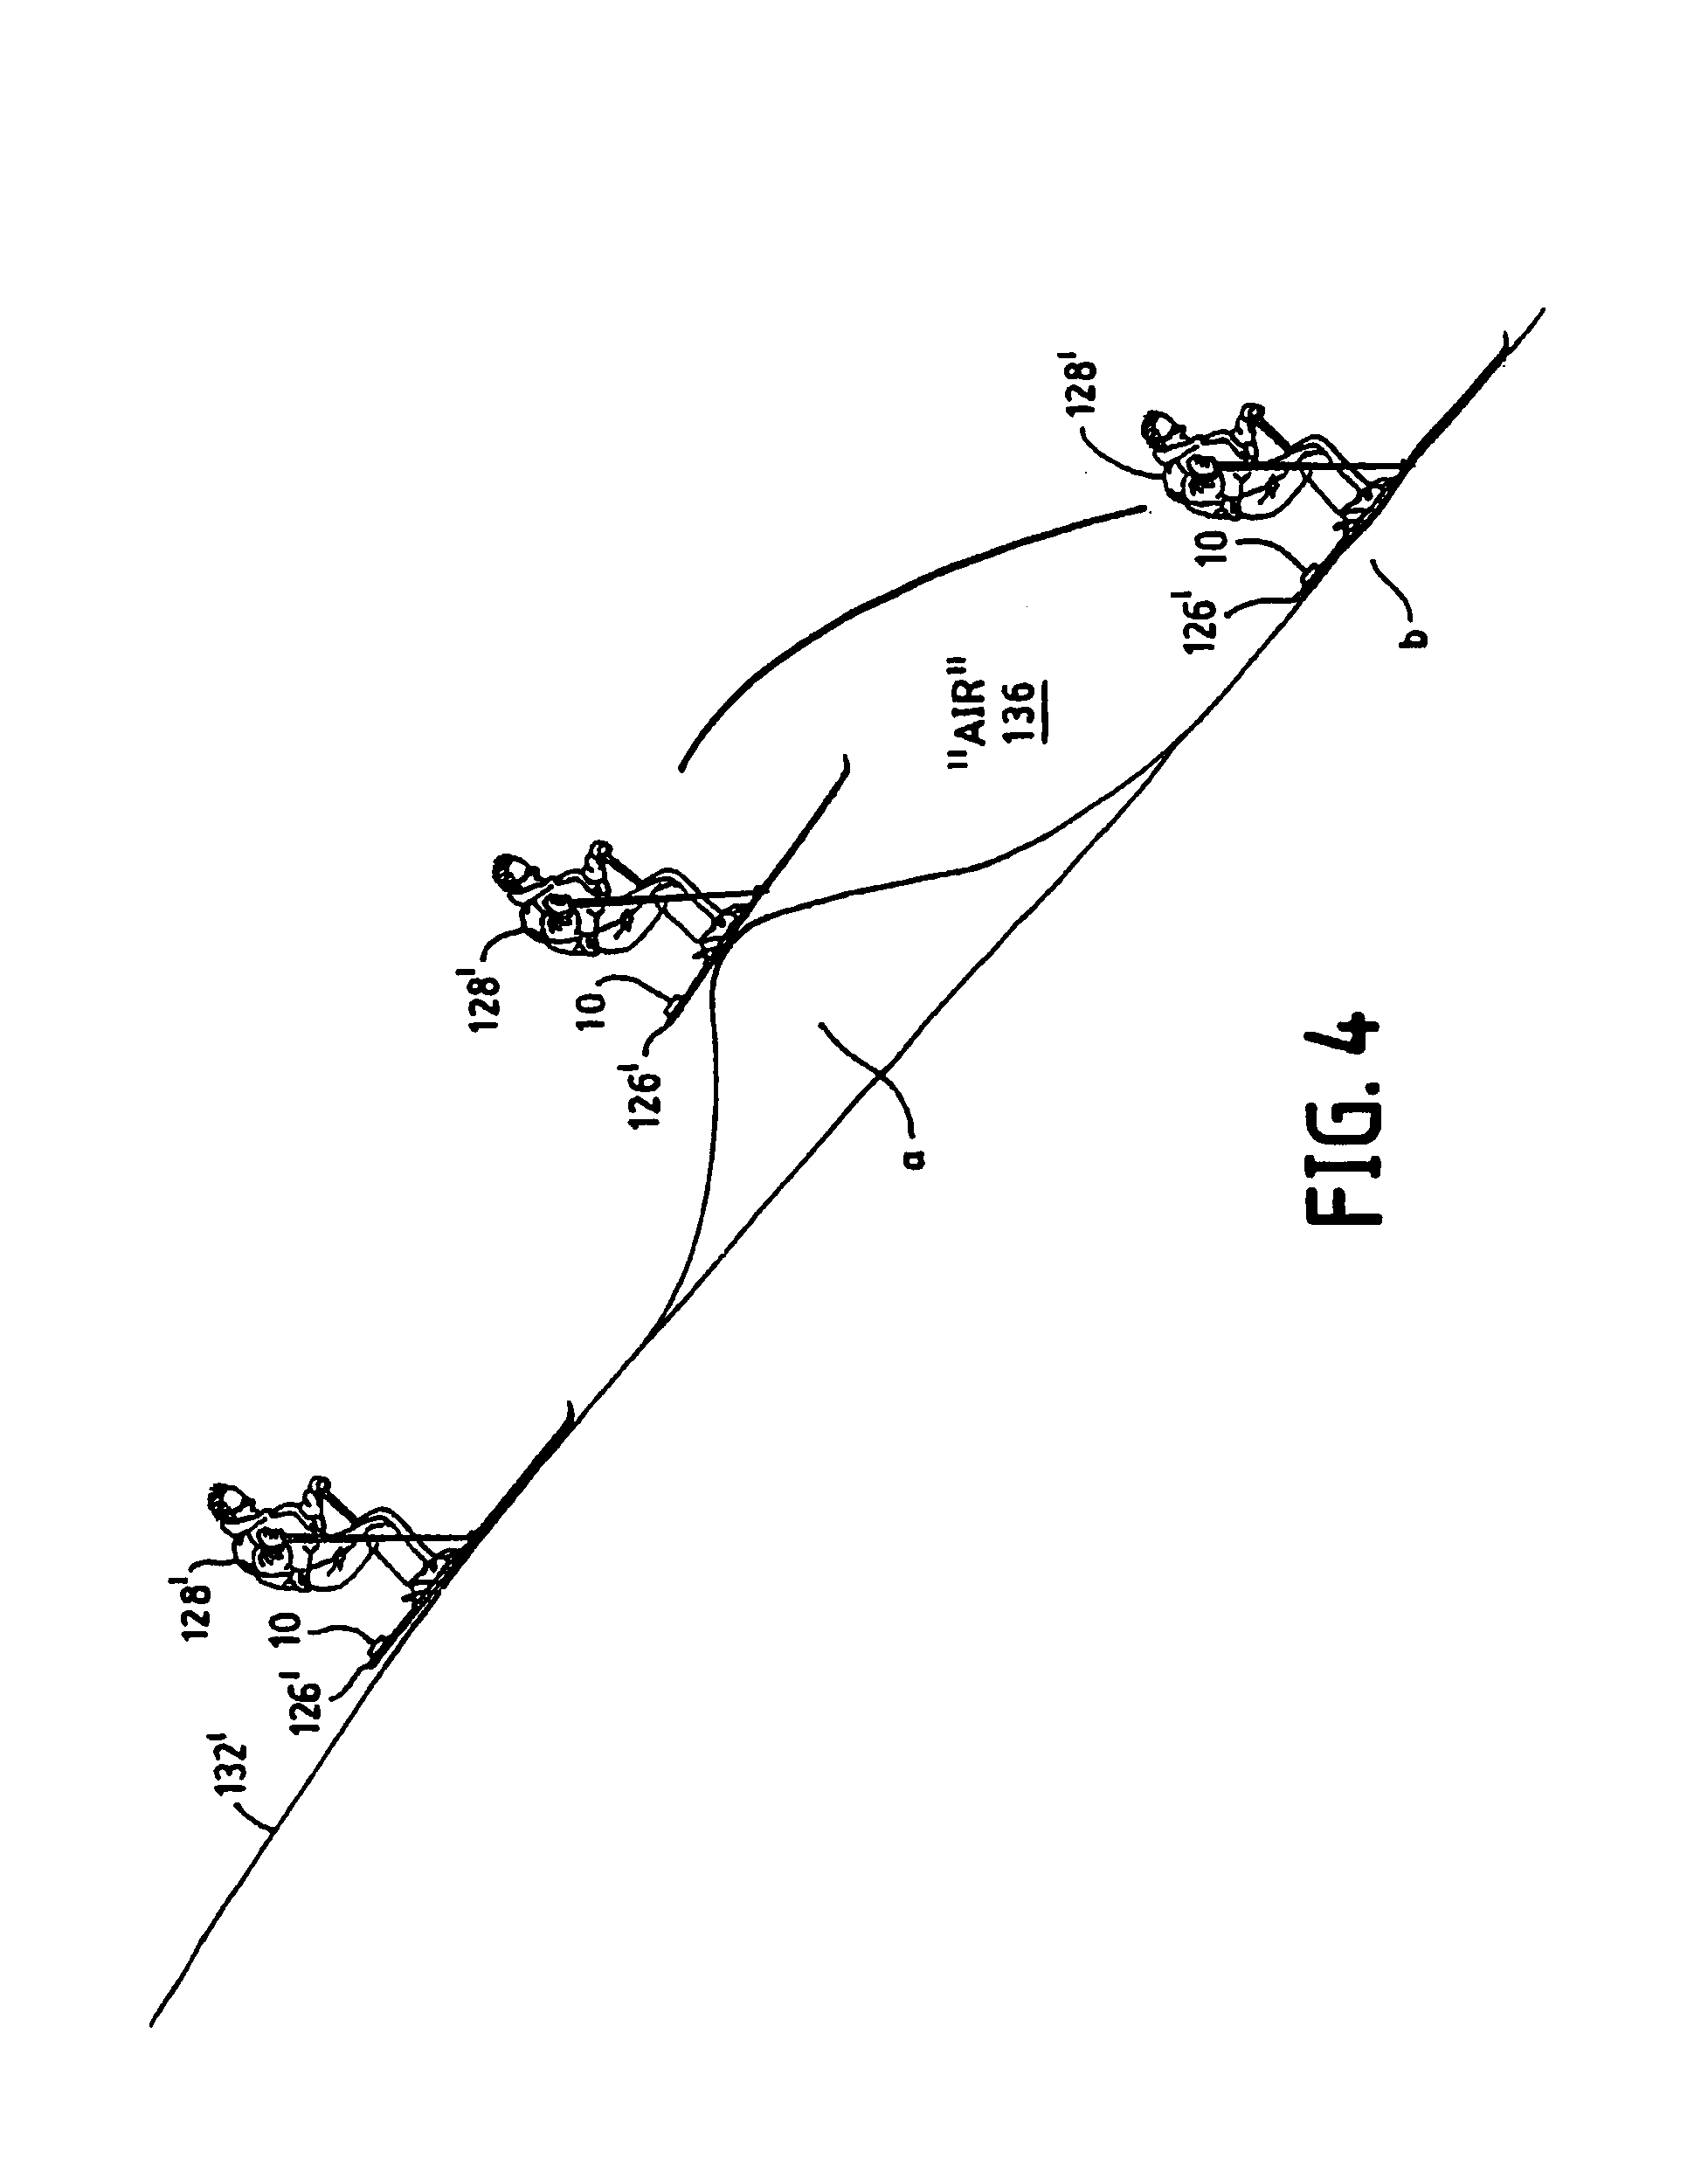 Patent Us 7092846 B2 This Basic Plot Roller Coaster Diagram Includes 4 Differentiated